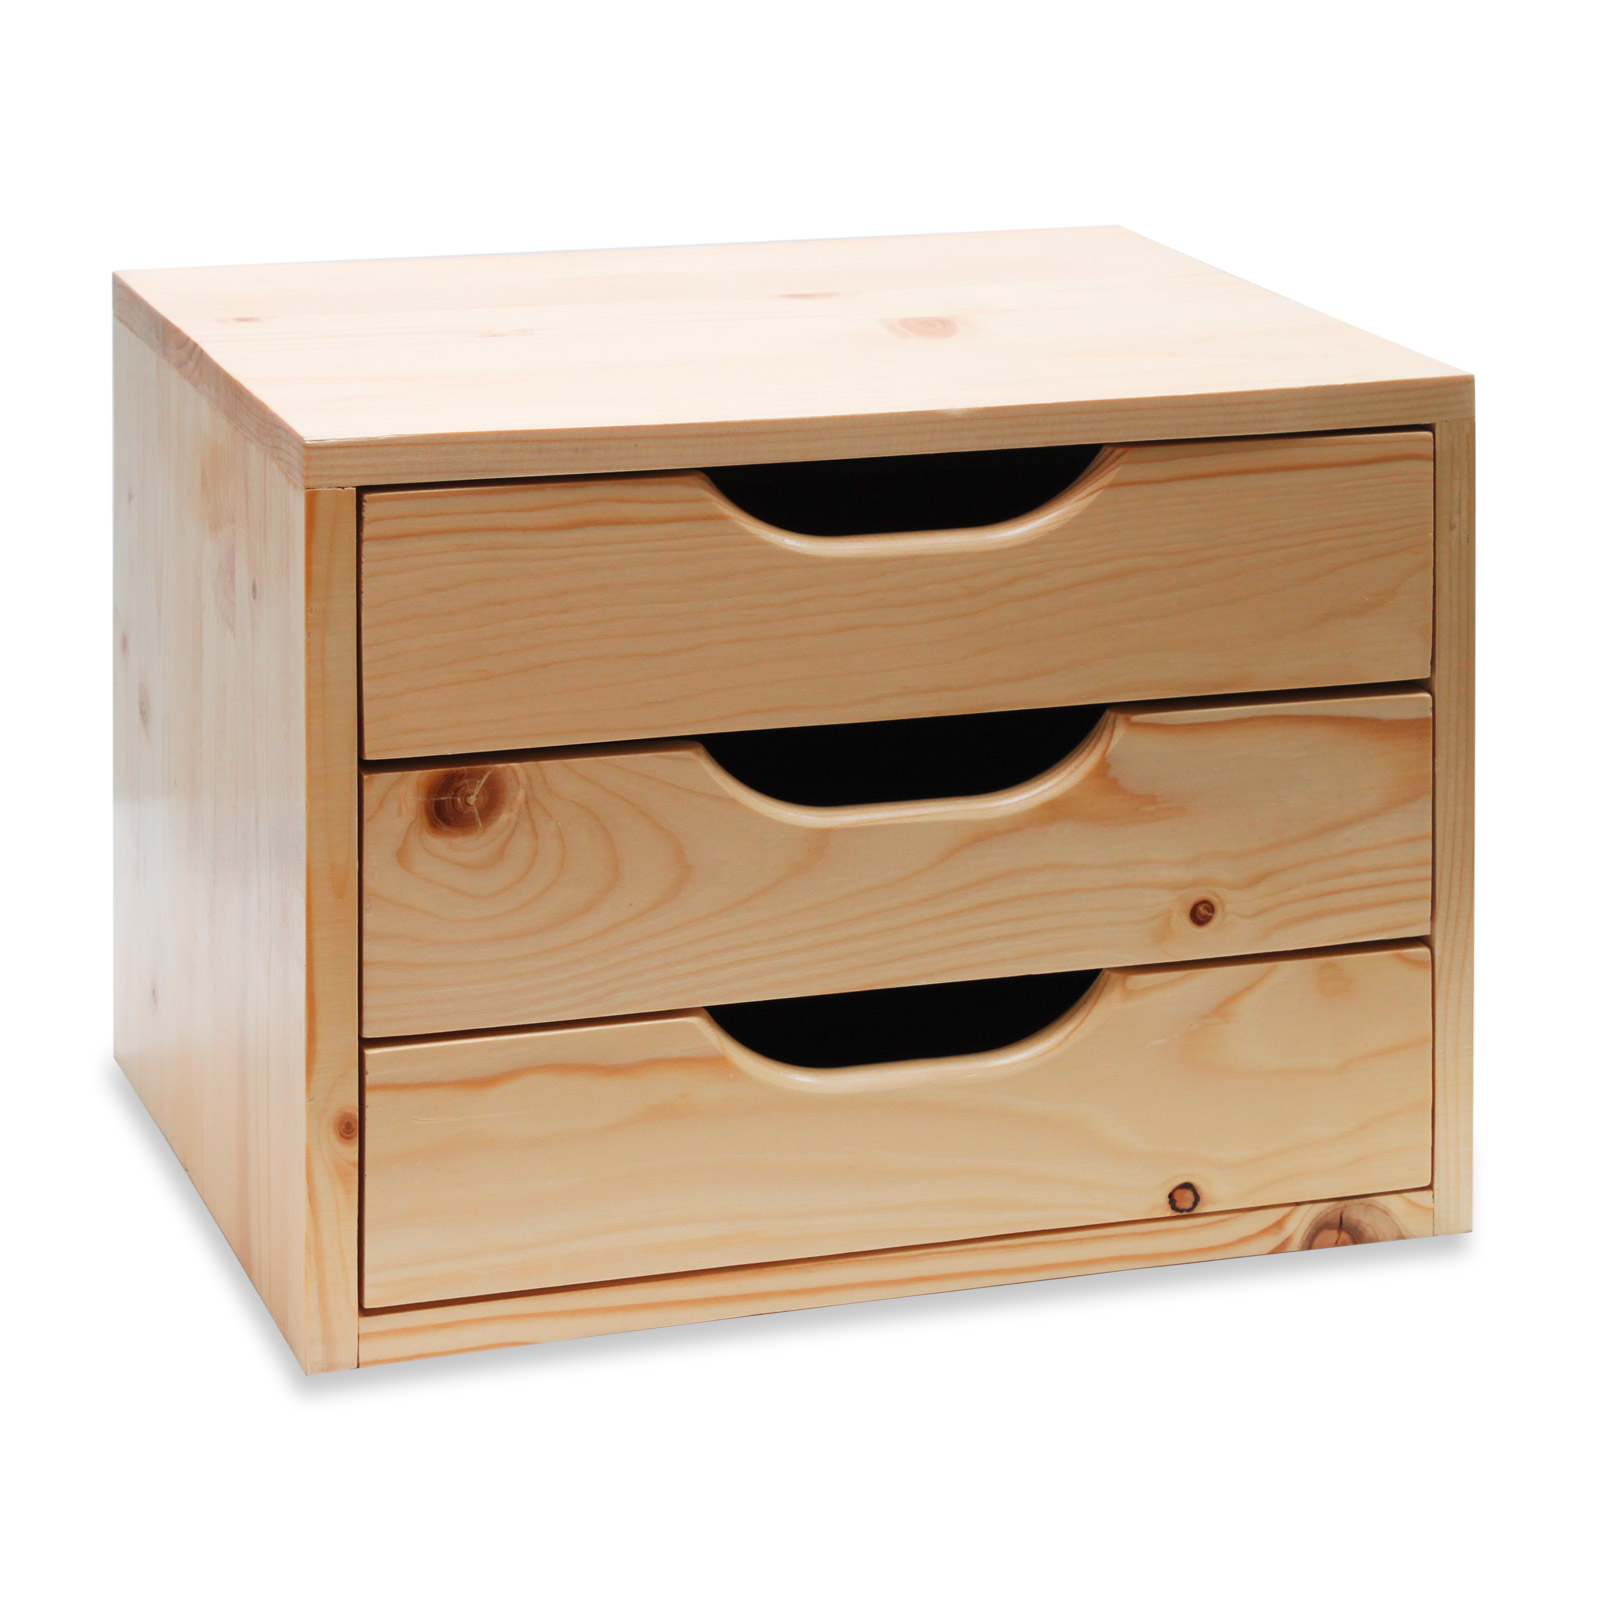 40617 holz schubladenbox beistelltisch holz box. Black Bedroom Furniture Sets. Home Design Ideas